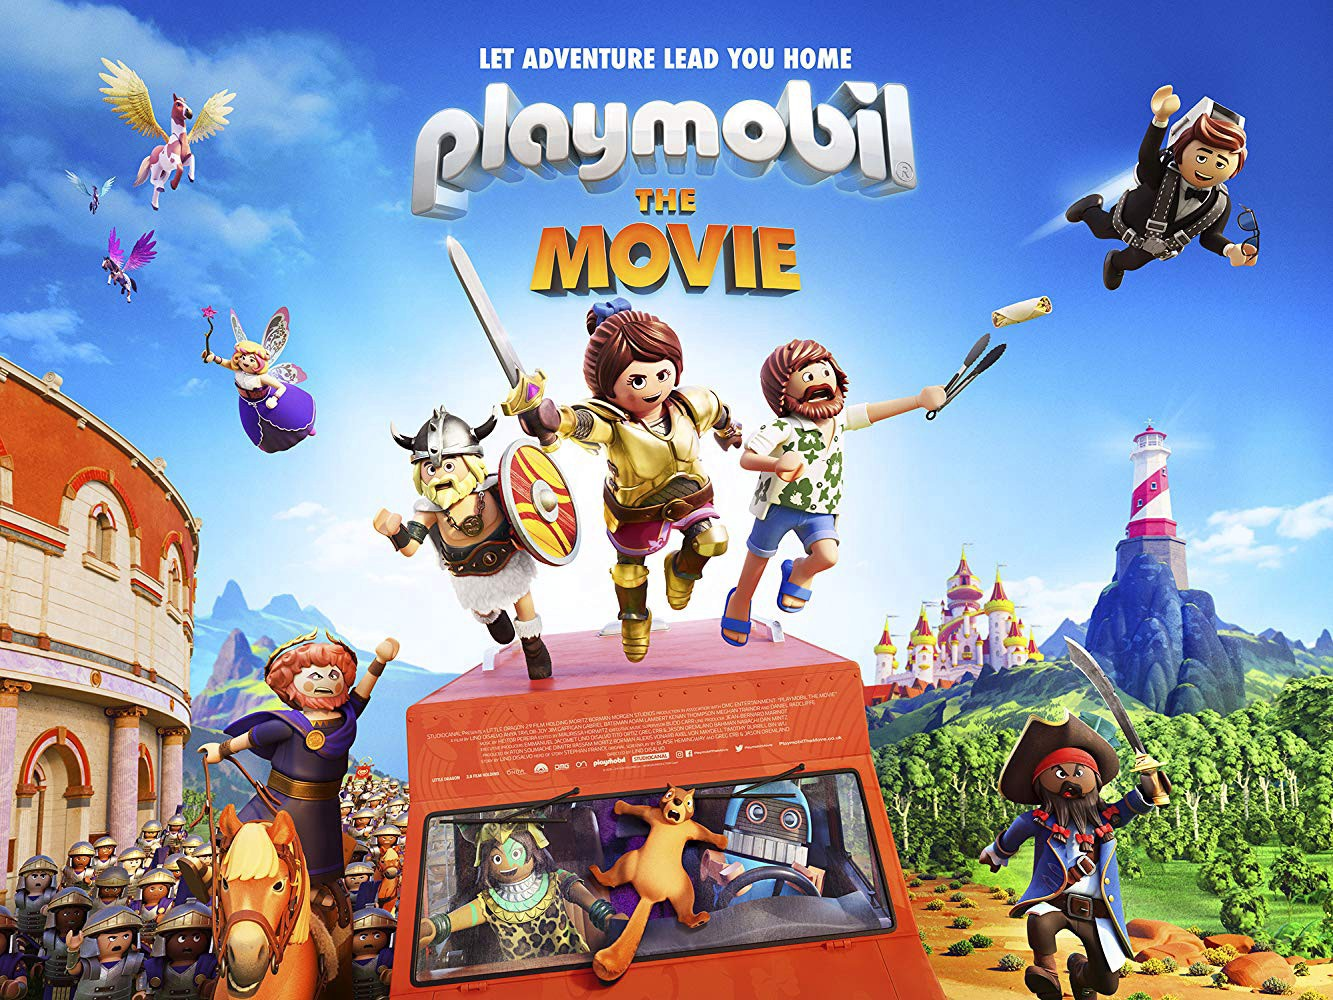 Free Full Cartoon Movies official] watch new movies online free playmobil: the movie